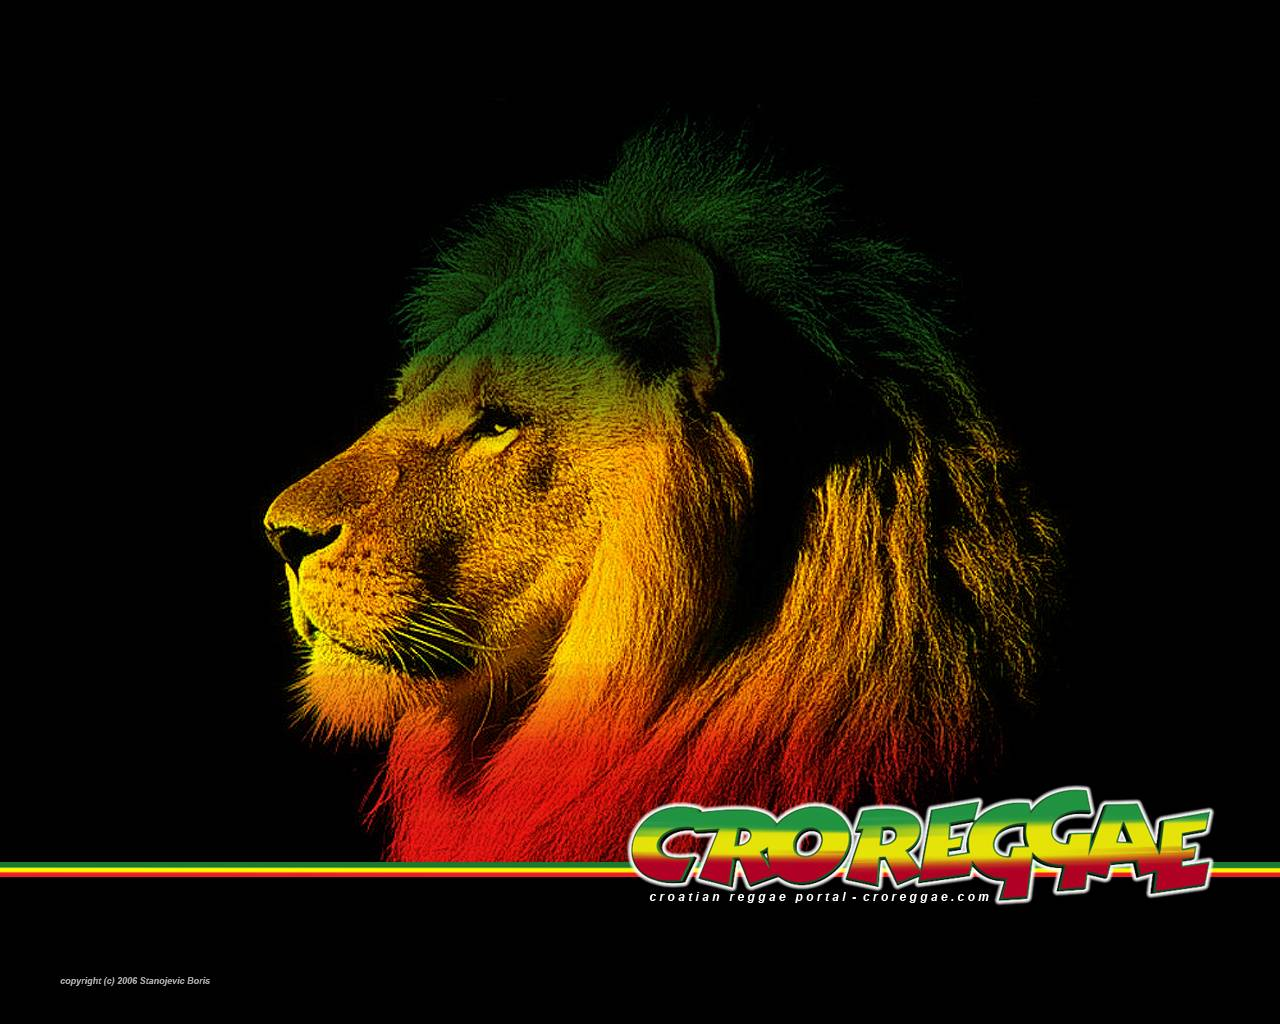 rasta smoke wallpaper moving - photo #30